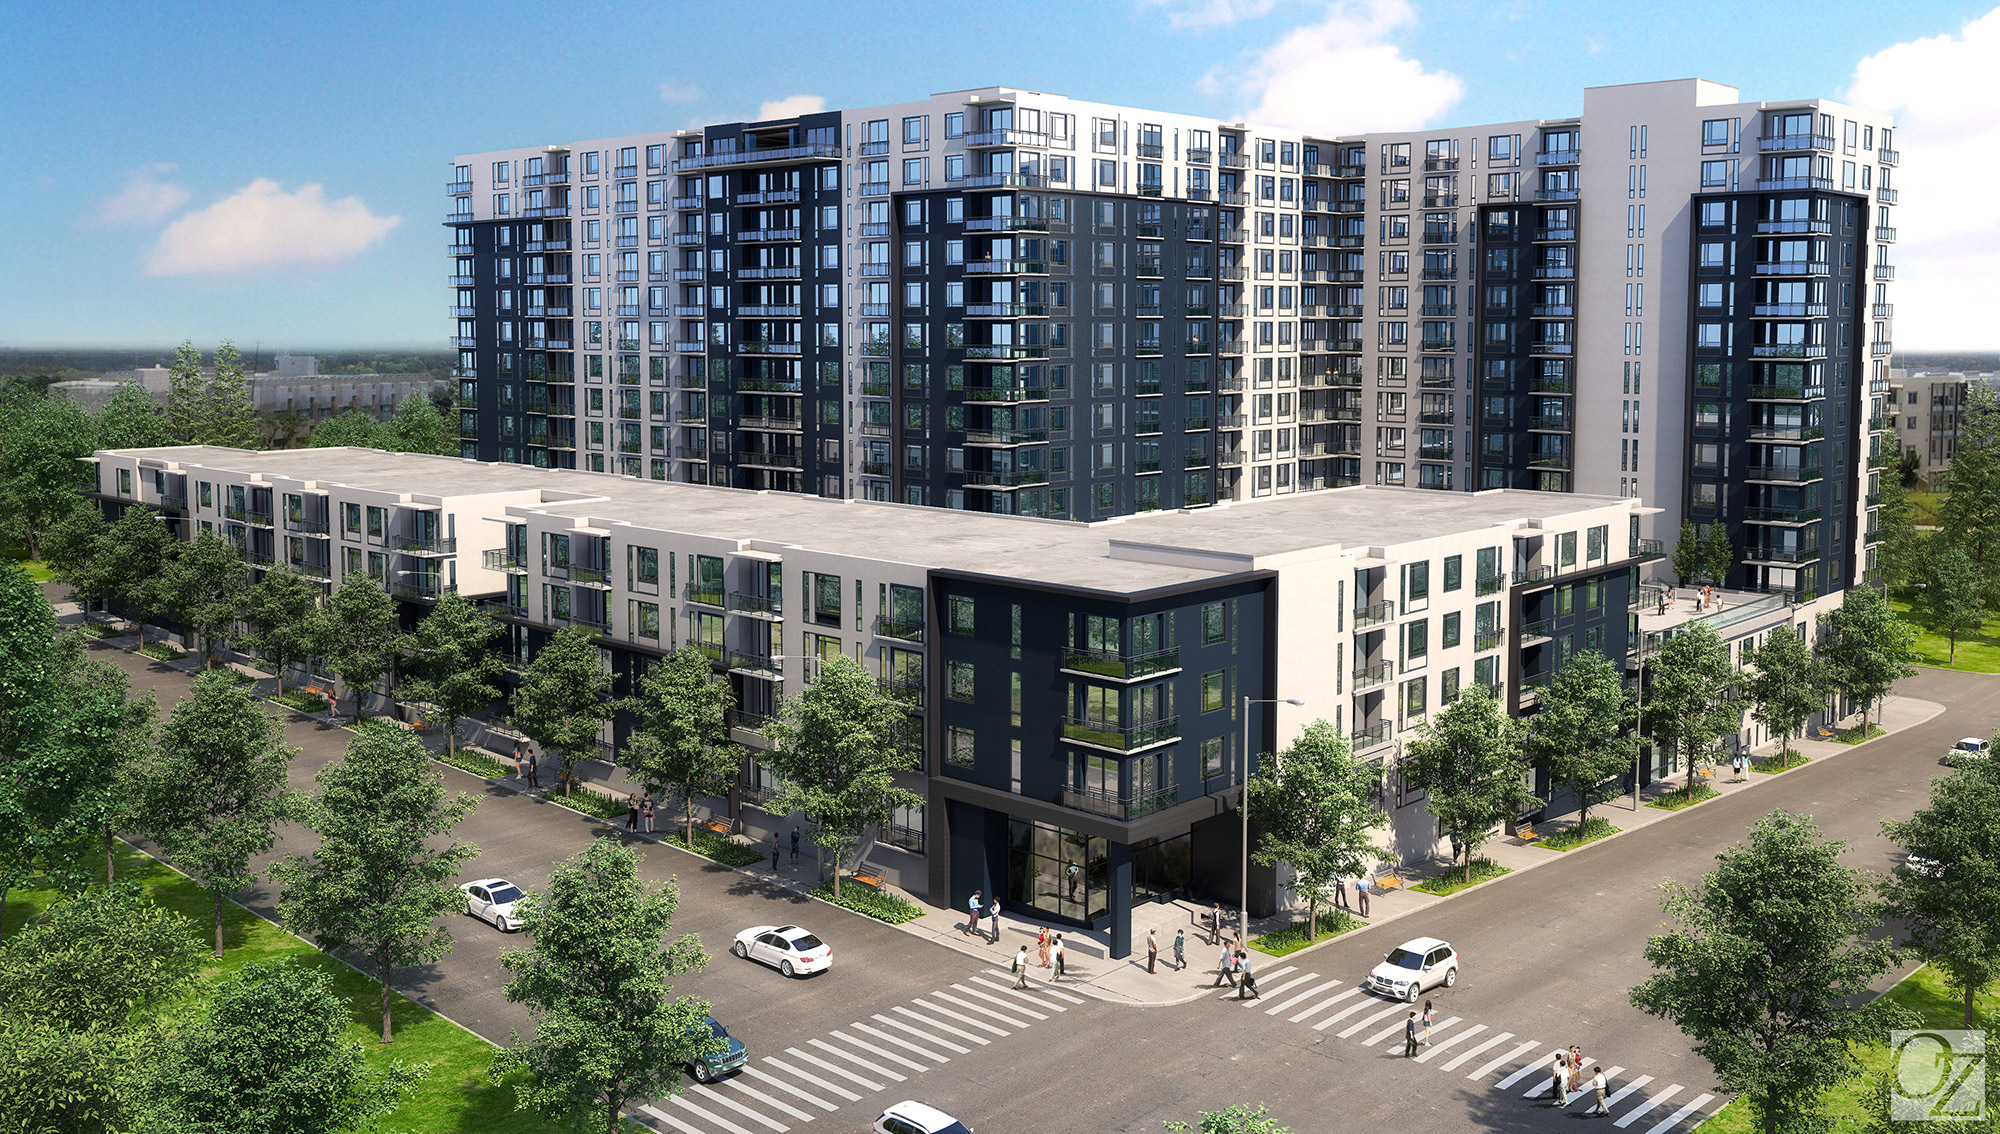 26th and Alcott rendering, courtesy of OZ Architecture